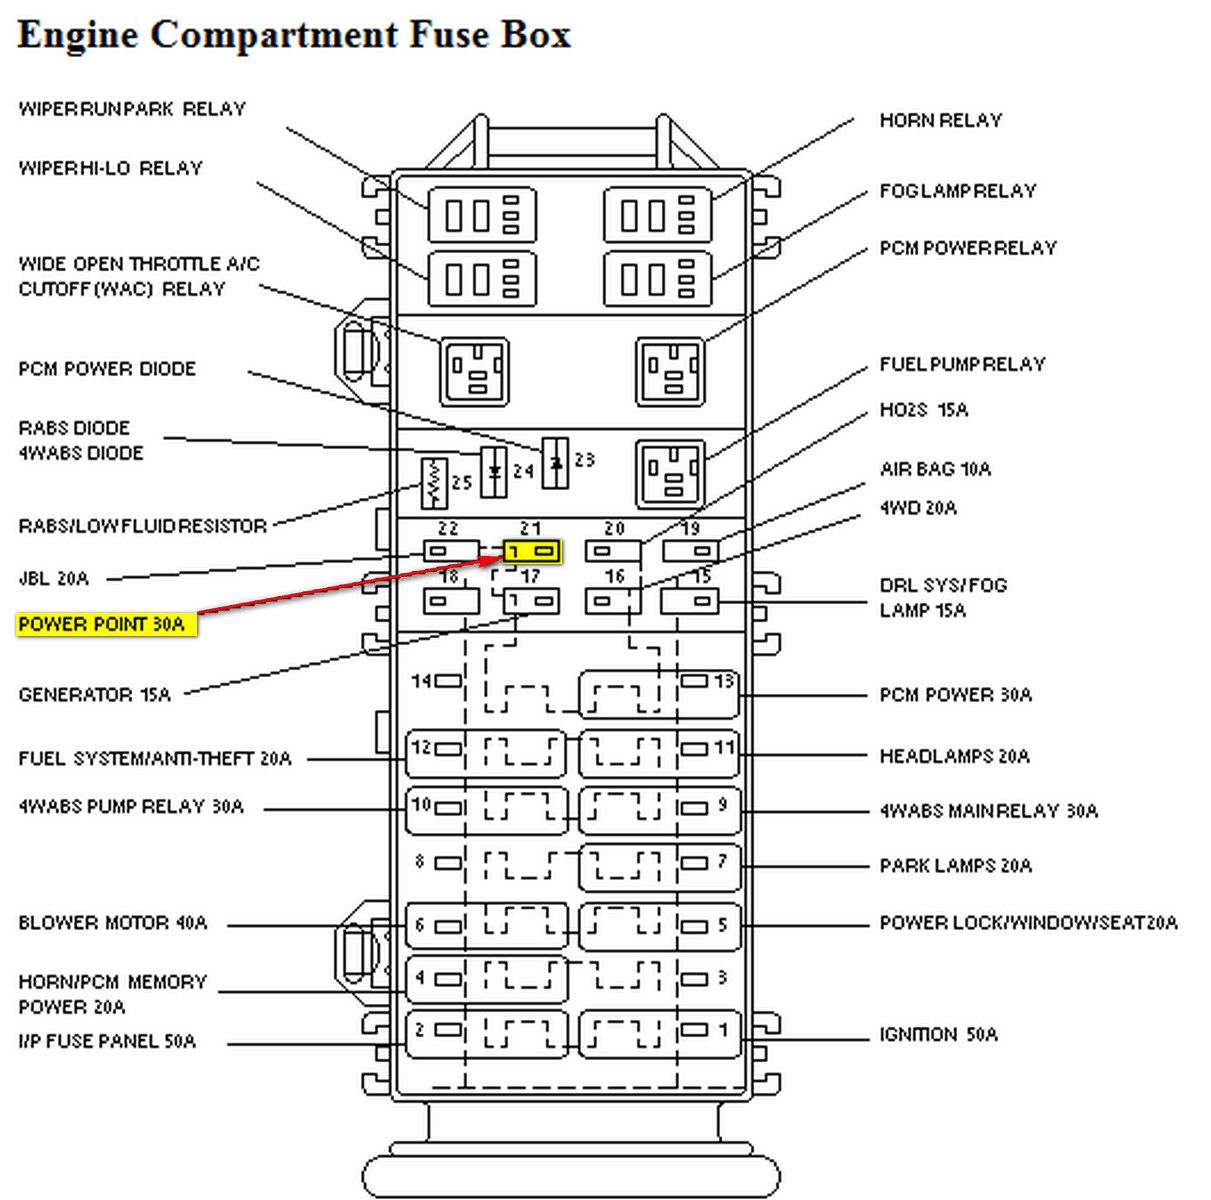 hight resolution of 2002 ford ranger fuse diagram 1997 ford ranger fuse box diagram 1996 ford ranger 4 cylinder fuse box diagram 1996 ford ranger fuse box diagram